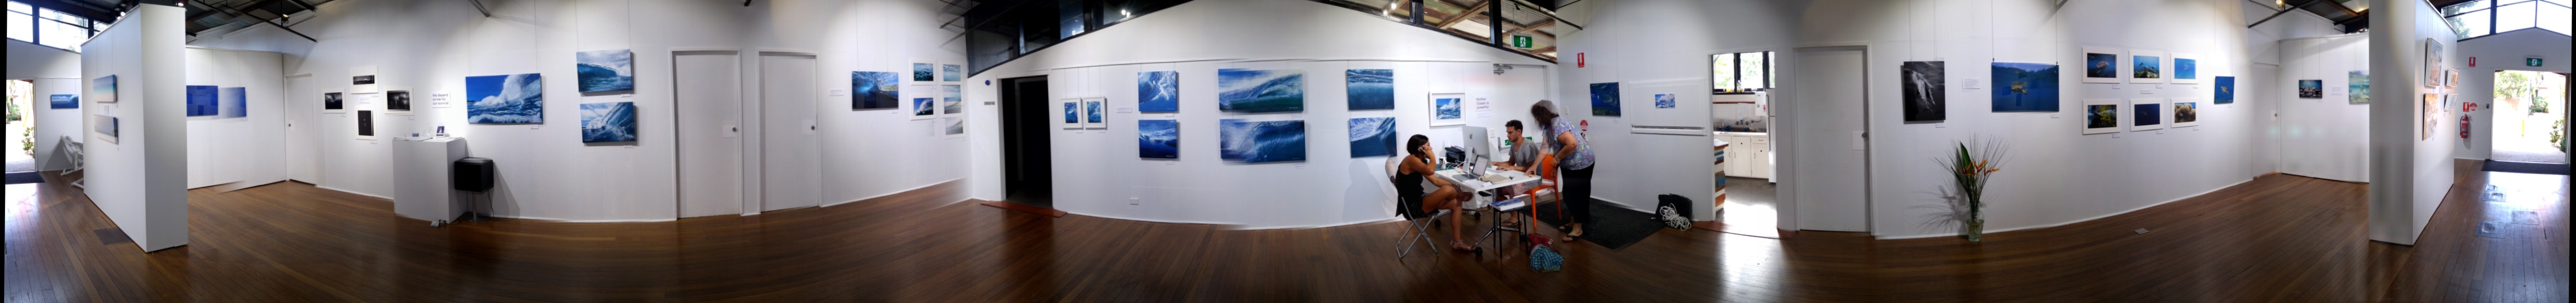 Mother Ocean – Warringah Creative Space, Sydney